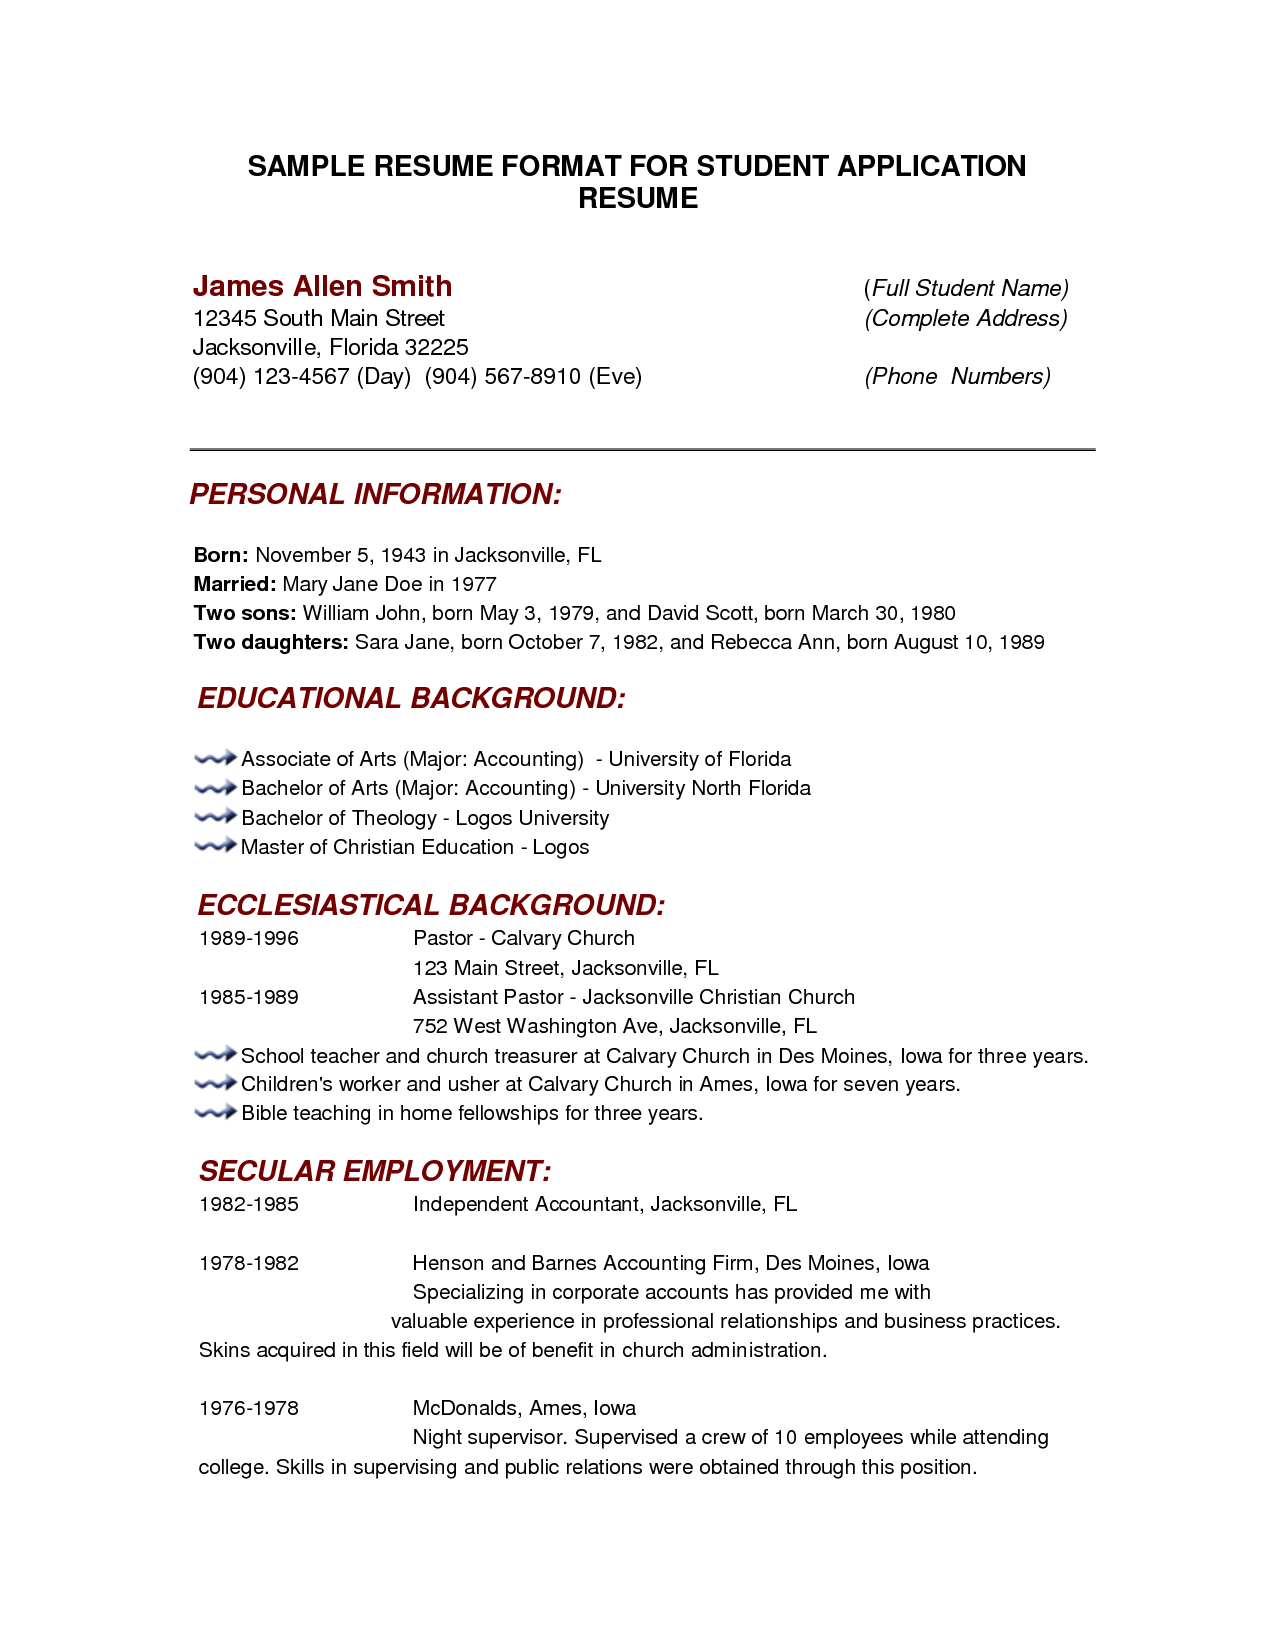 Sample Resume Formats Resume Template For College Students  Httpwwwresumecareer